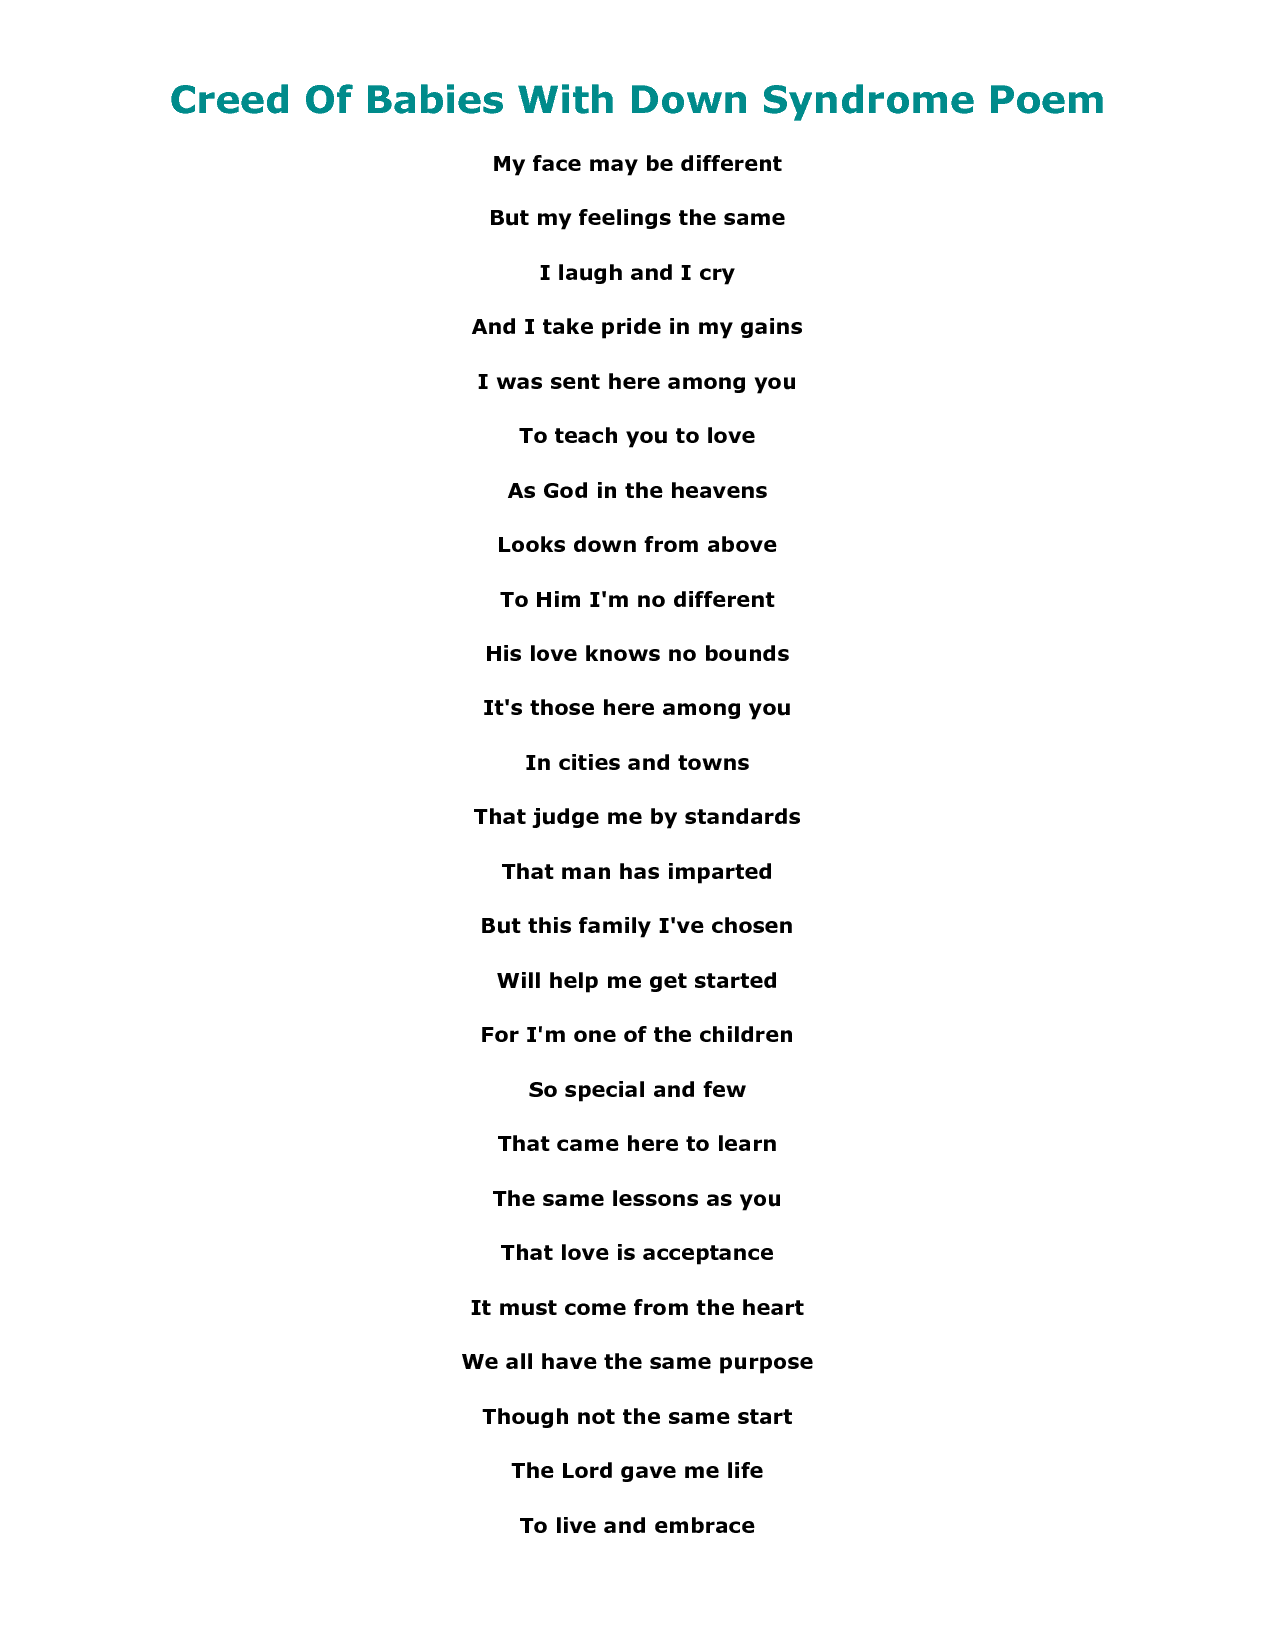 poems about down syndrome scope of work template a piece of my